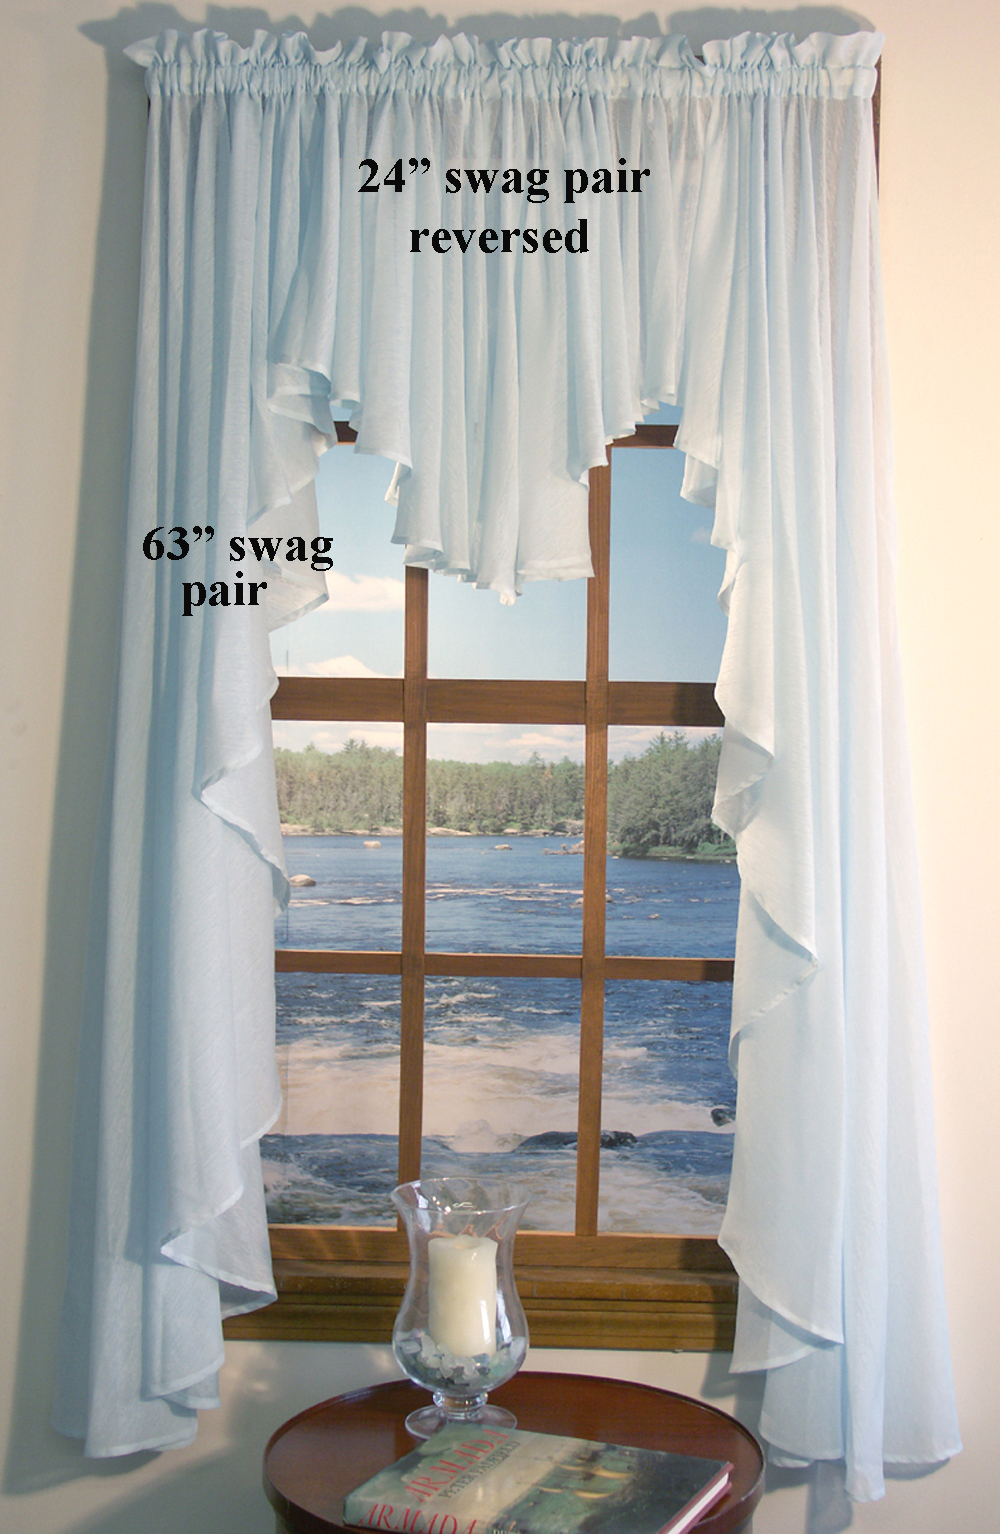 Sea Glass Full Bodied Swag Thecurtainshop Com